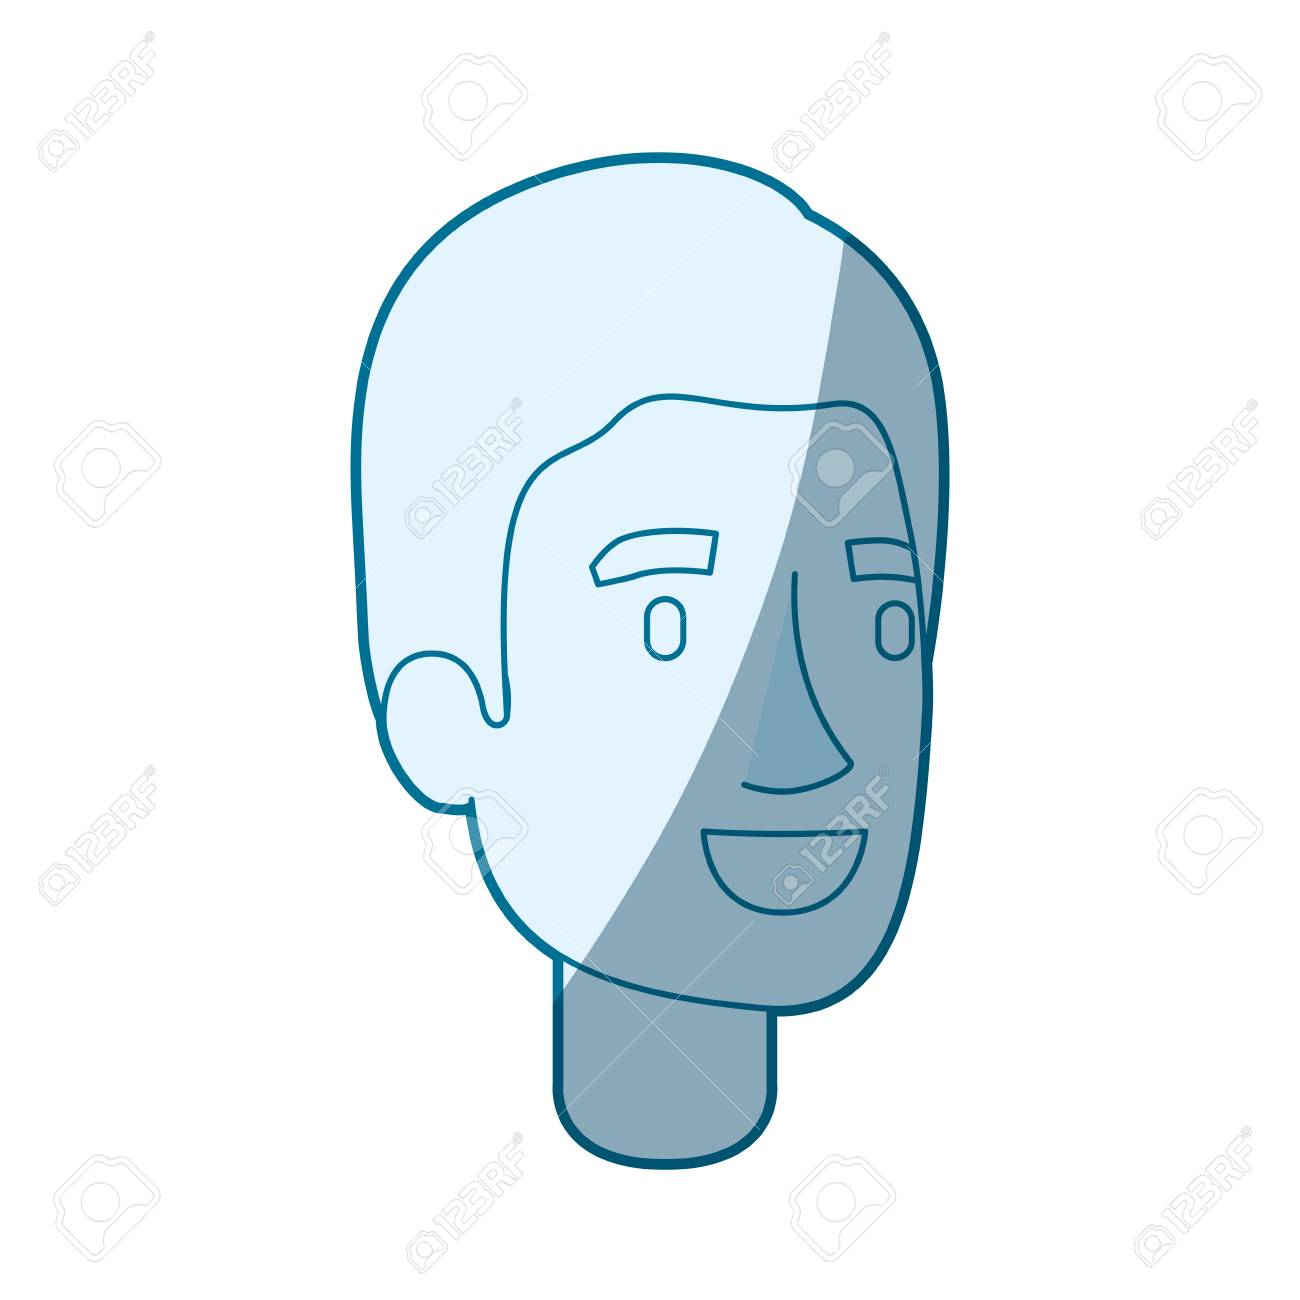 Blue Color Silhouette Shading Of Young Man Face With Simple Hair Royalty Free Cliparts Vectors And Stock Illustration Image 81481807